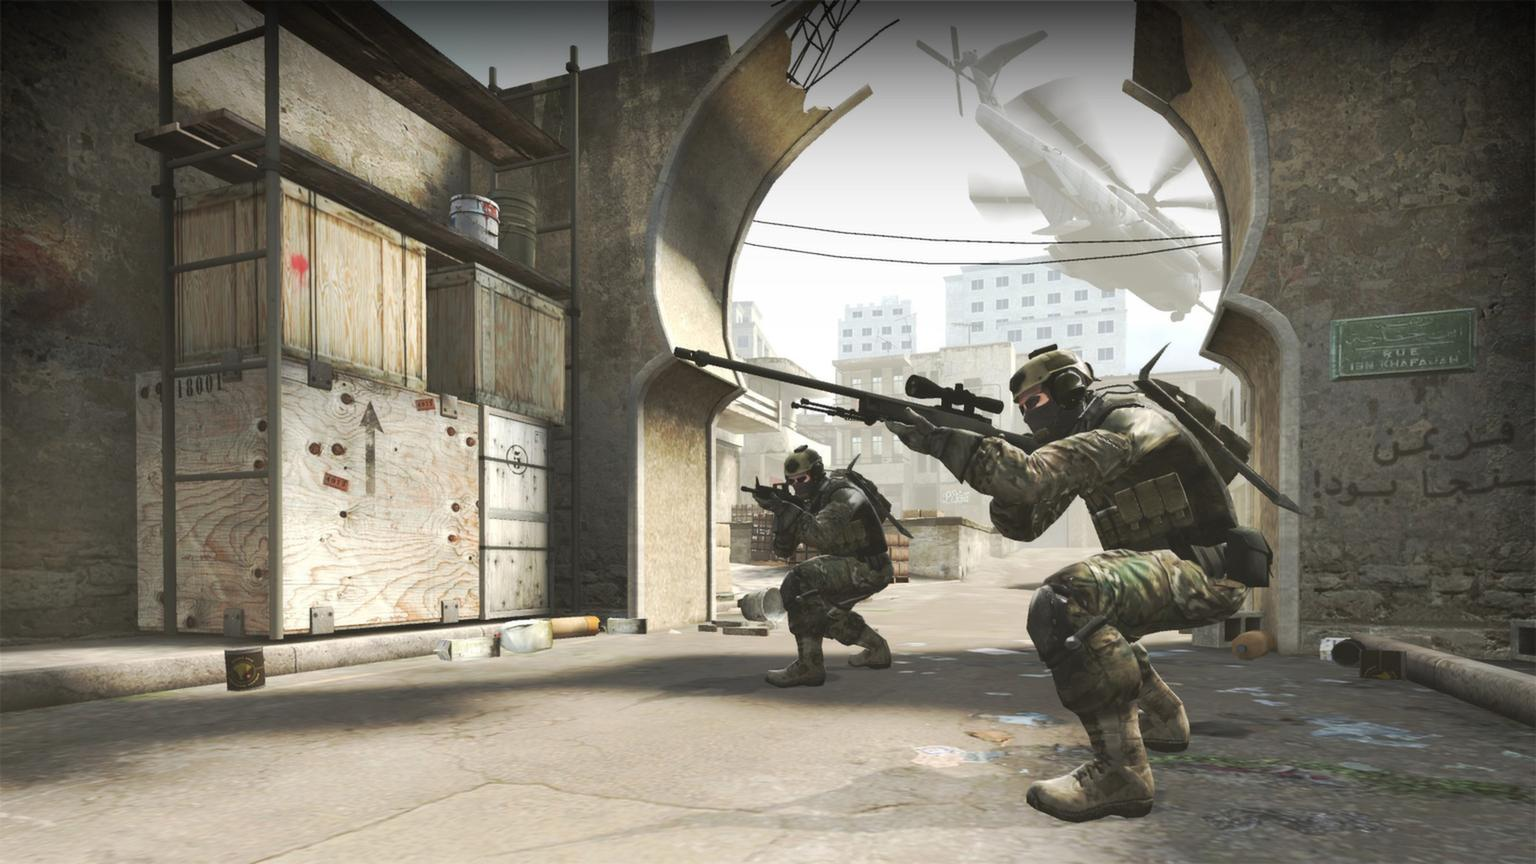 Game over: six arrested by Australian police over alleged online gaming match-fixing